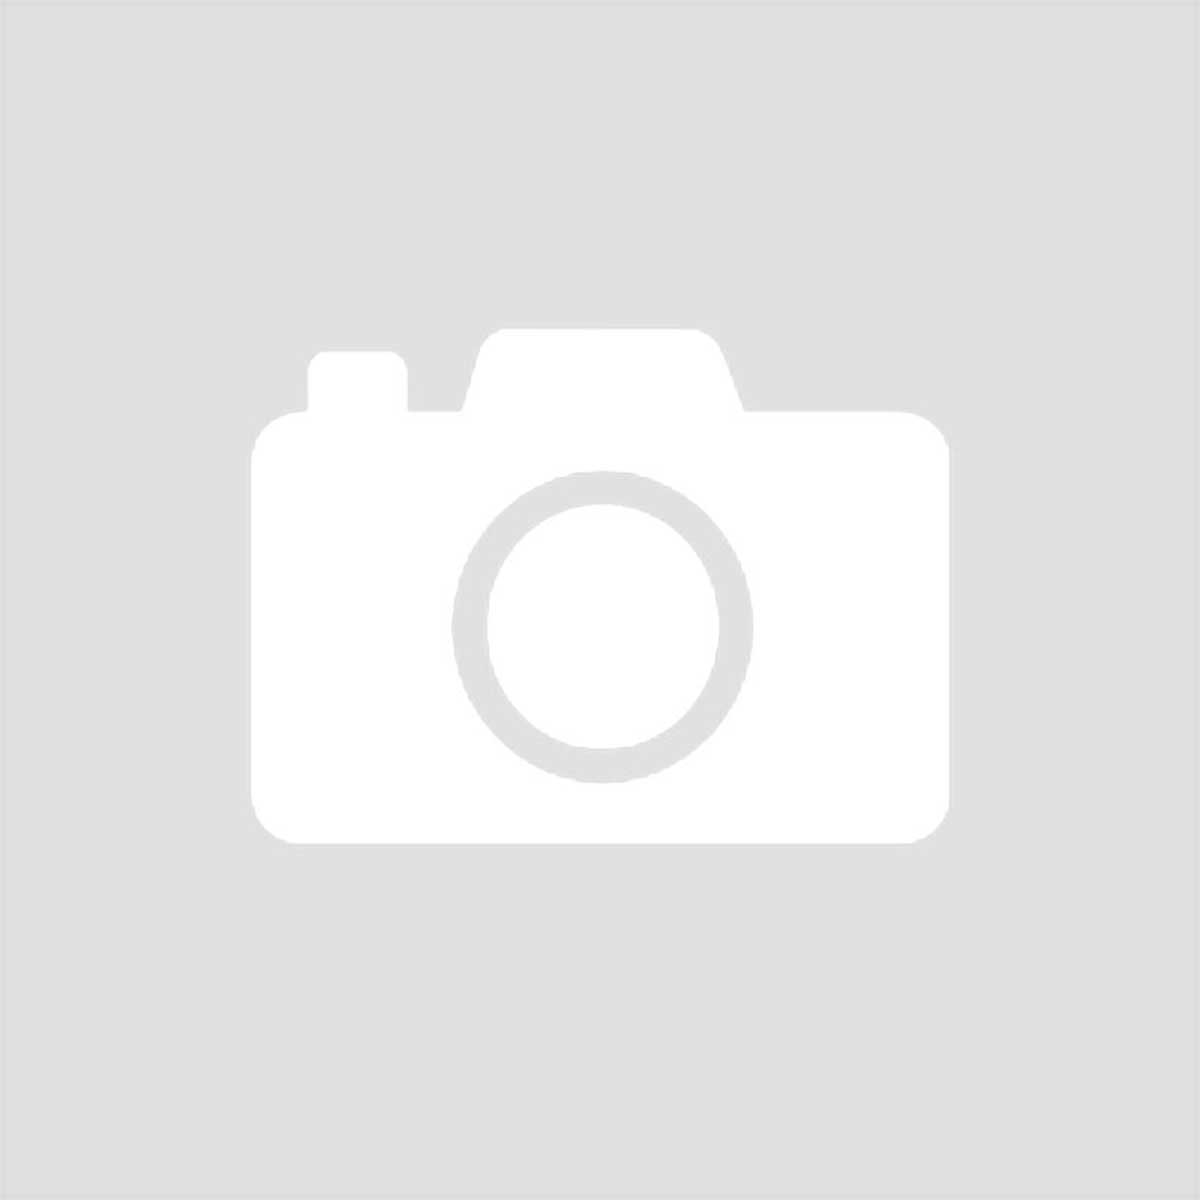 Where to Buy Liberon Woodcare Products